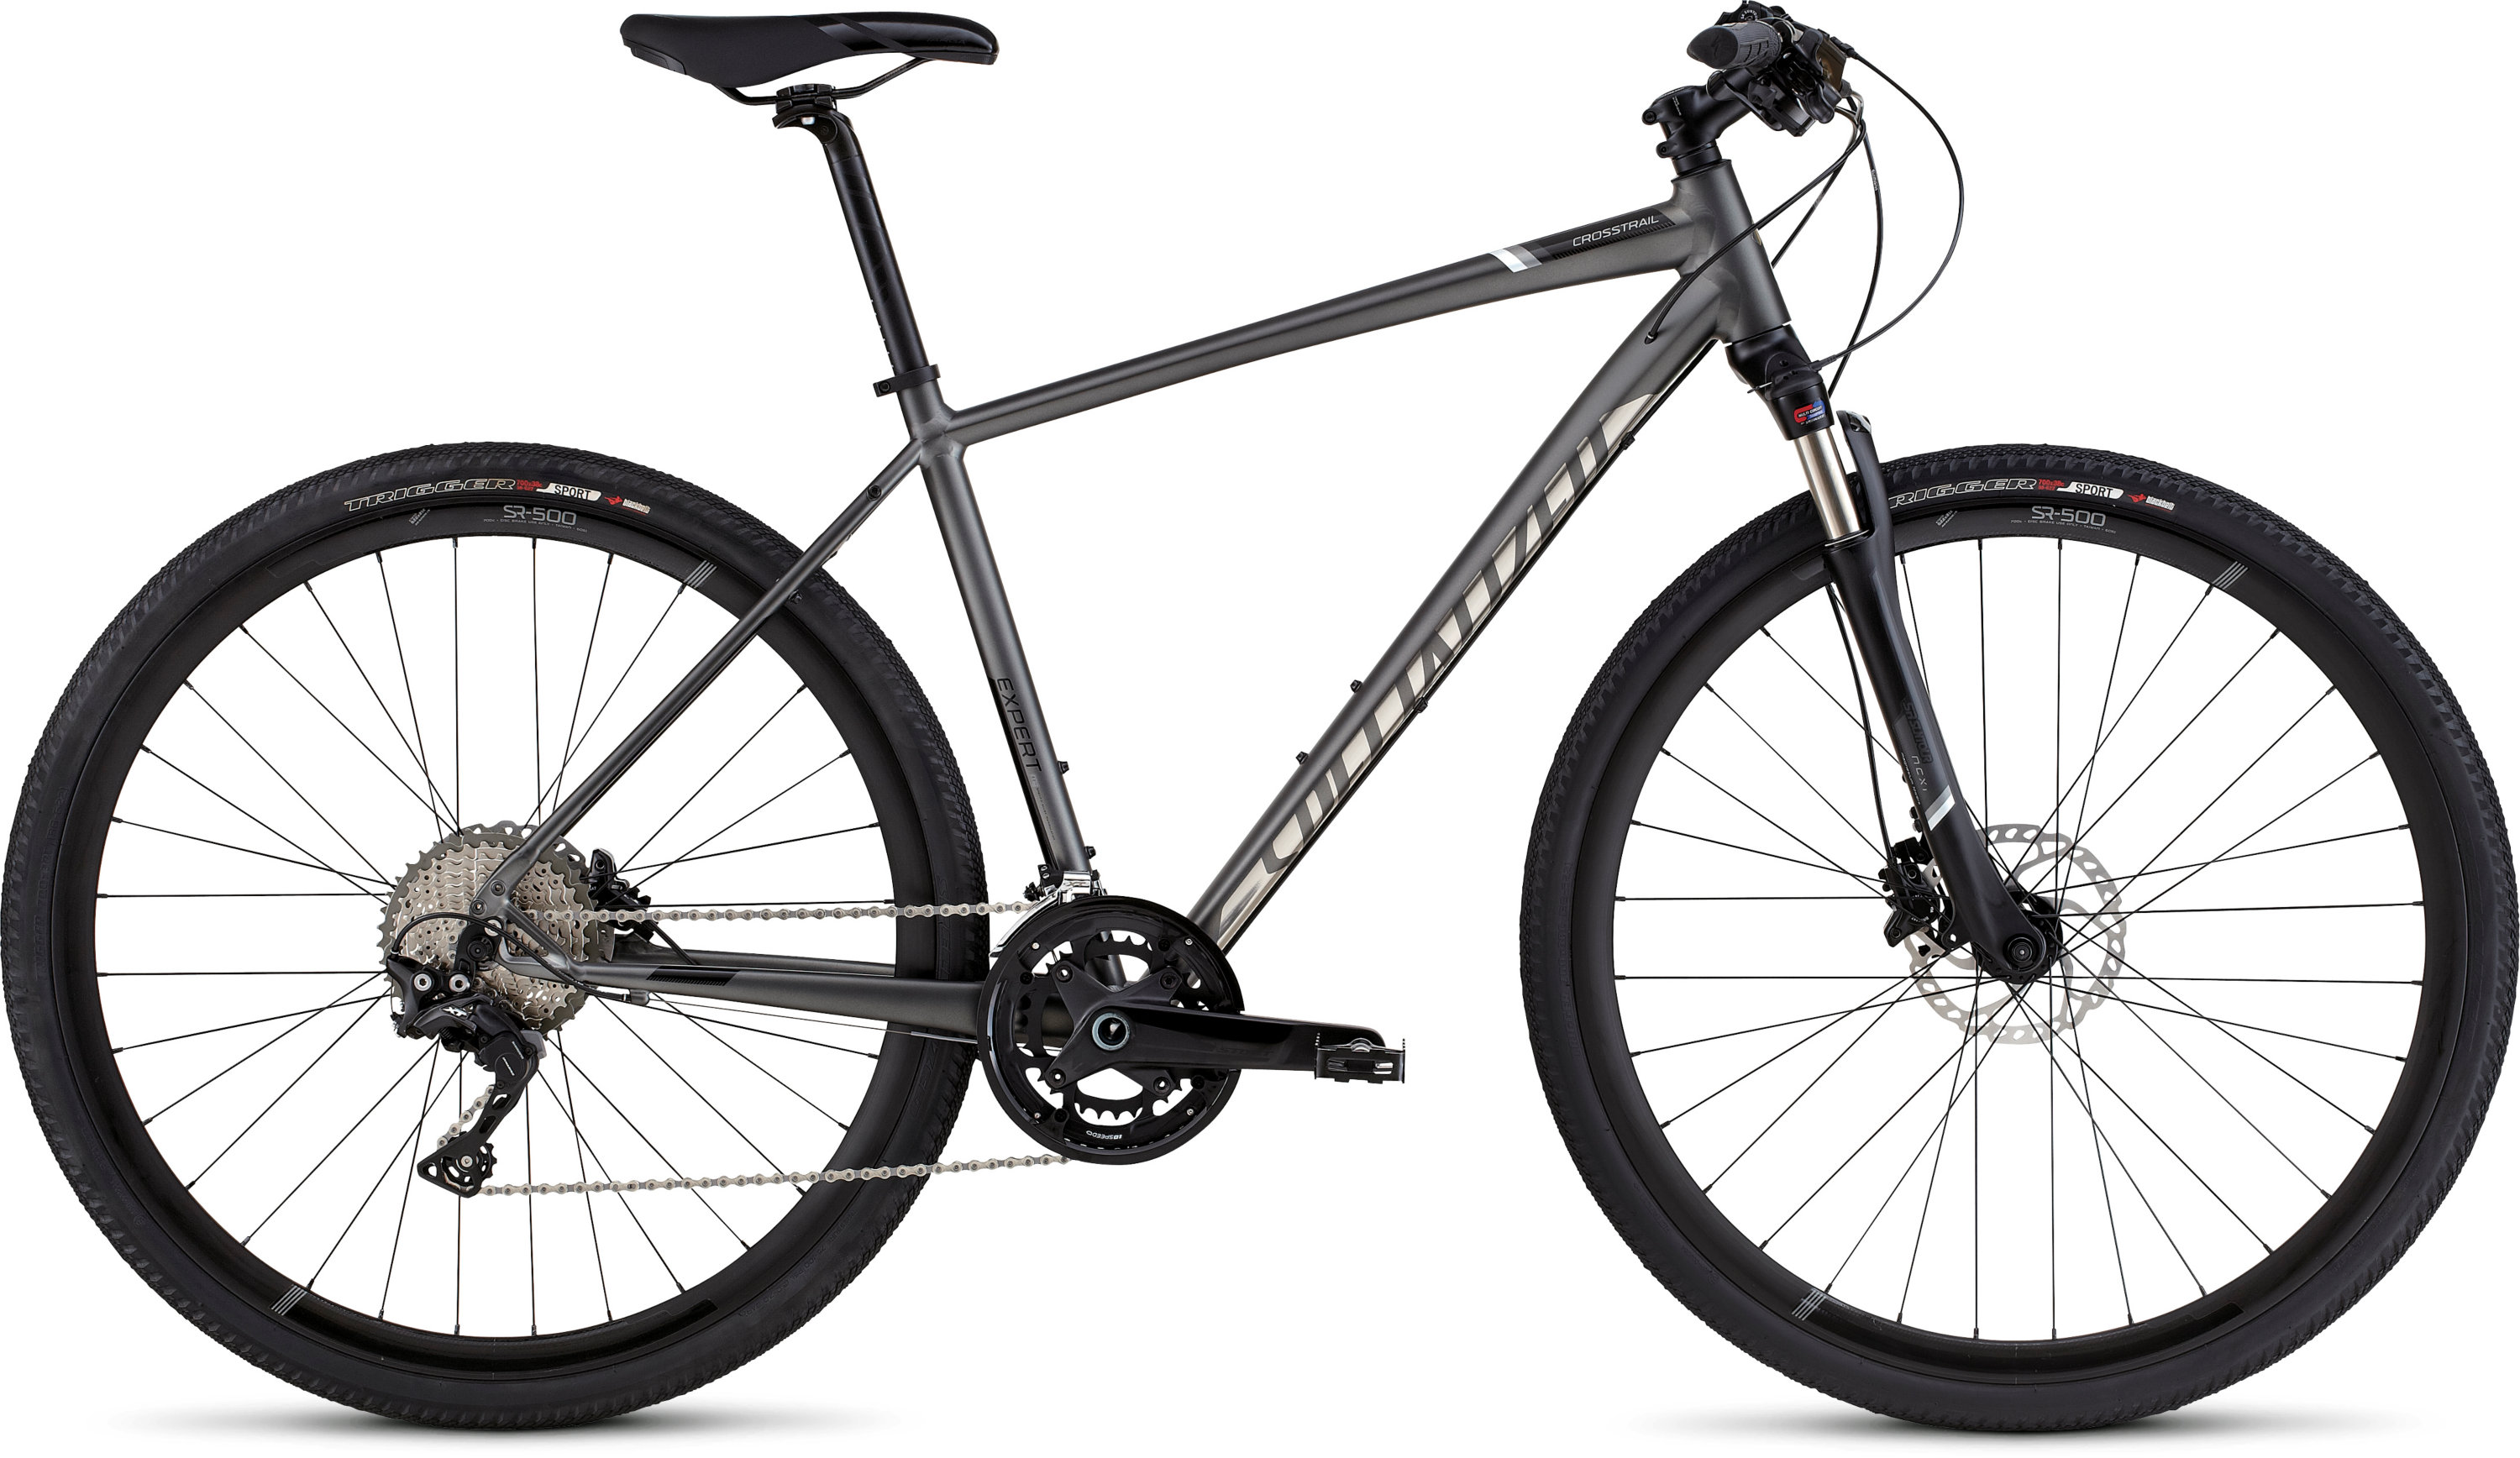 SPECIALIZED CT EXPERT DISC BLKCP/BLK/CHRM S - Bikedreams & Dustbikes